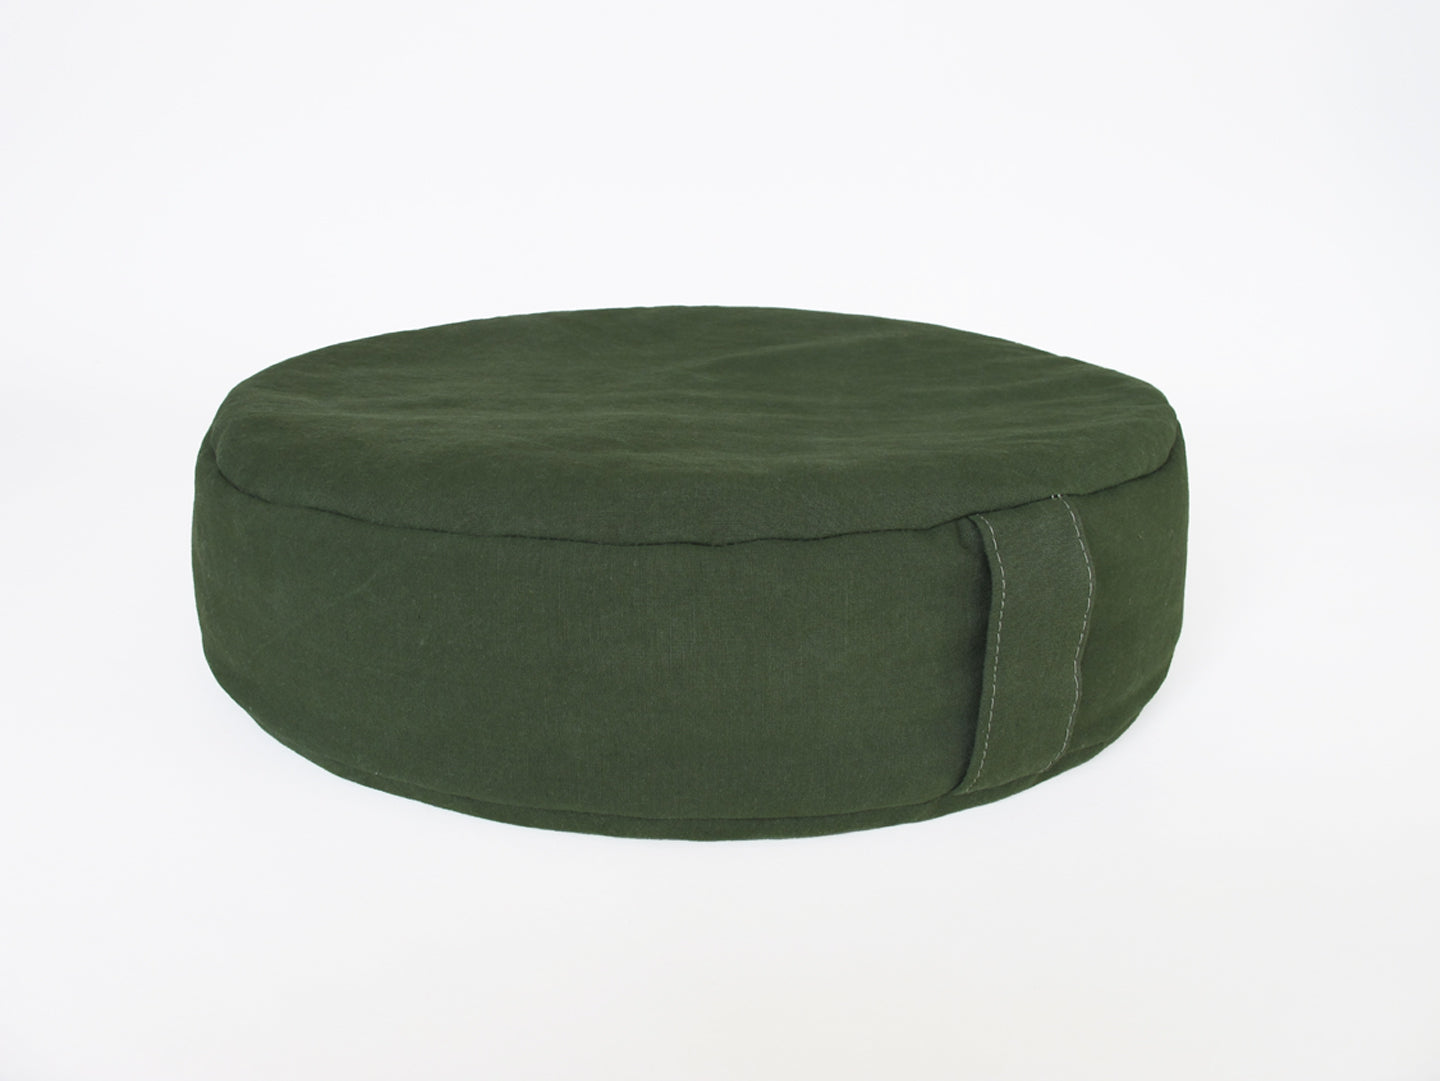 PEBBLE meditation cushion in shelter half canvas